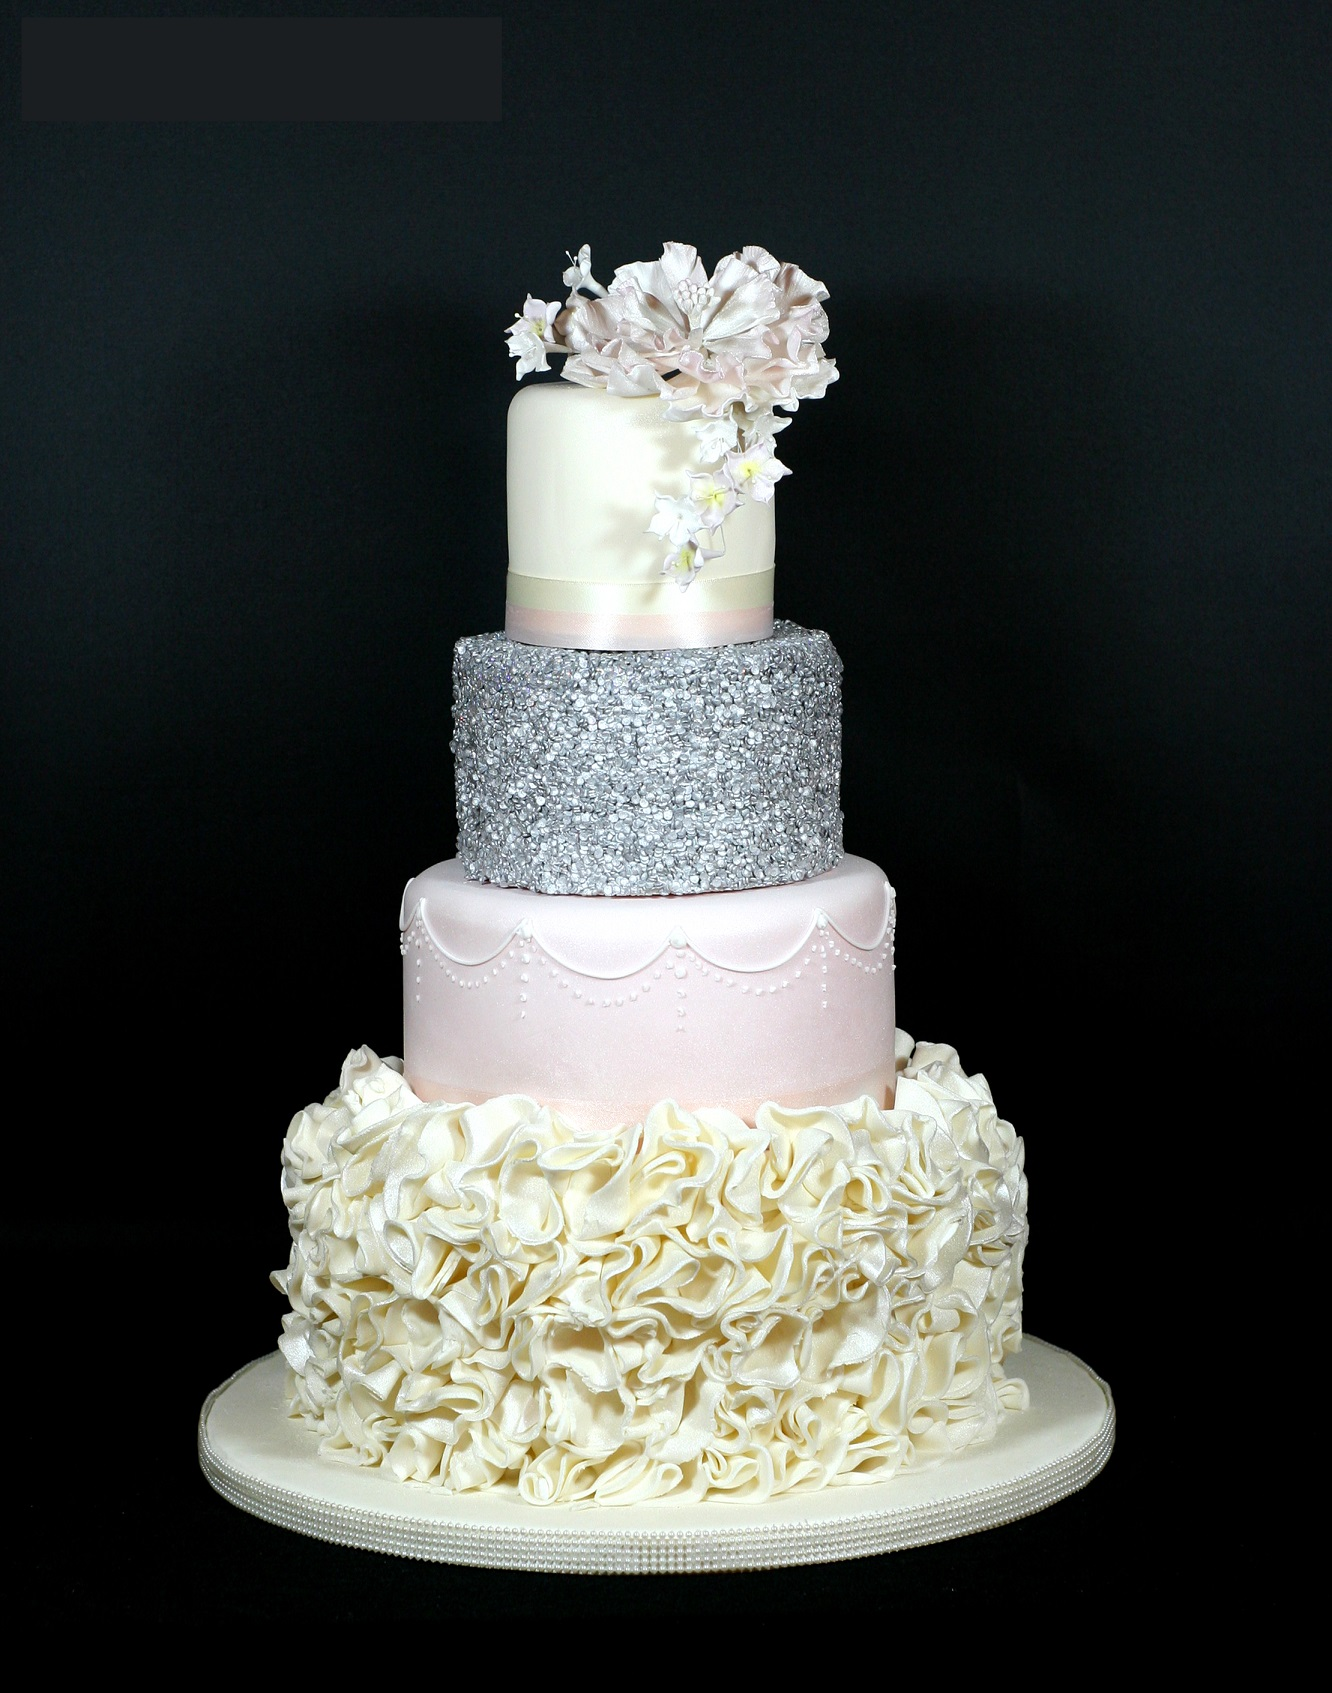 Chain of Cake Shops for Sale in Chennai